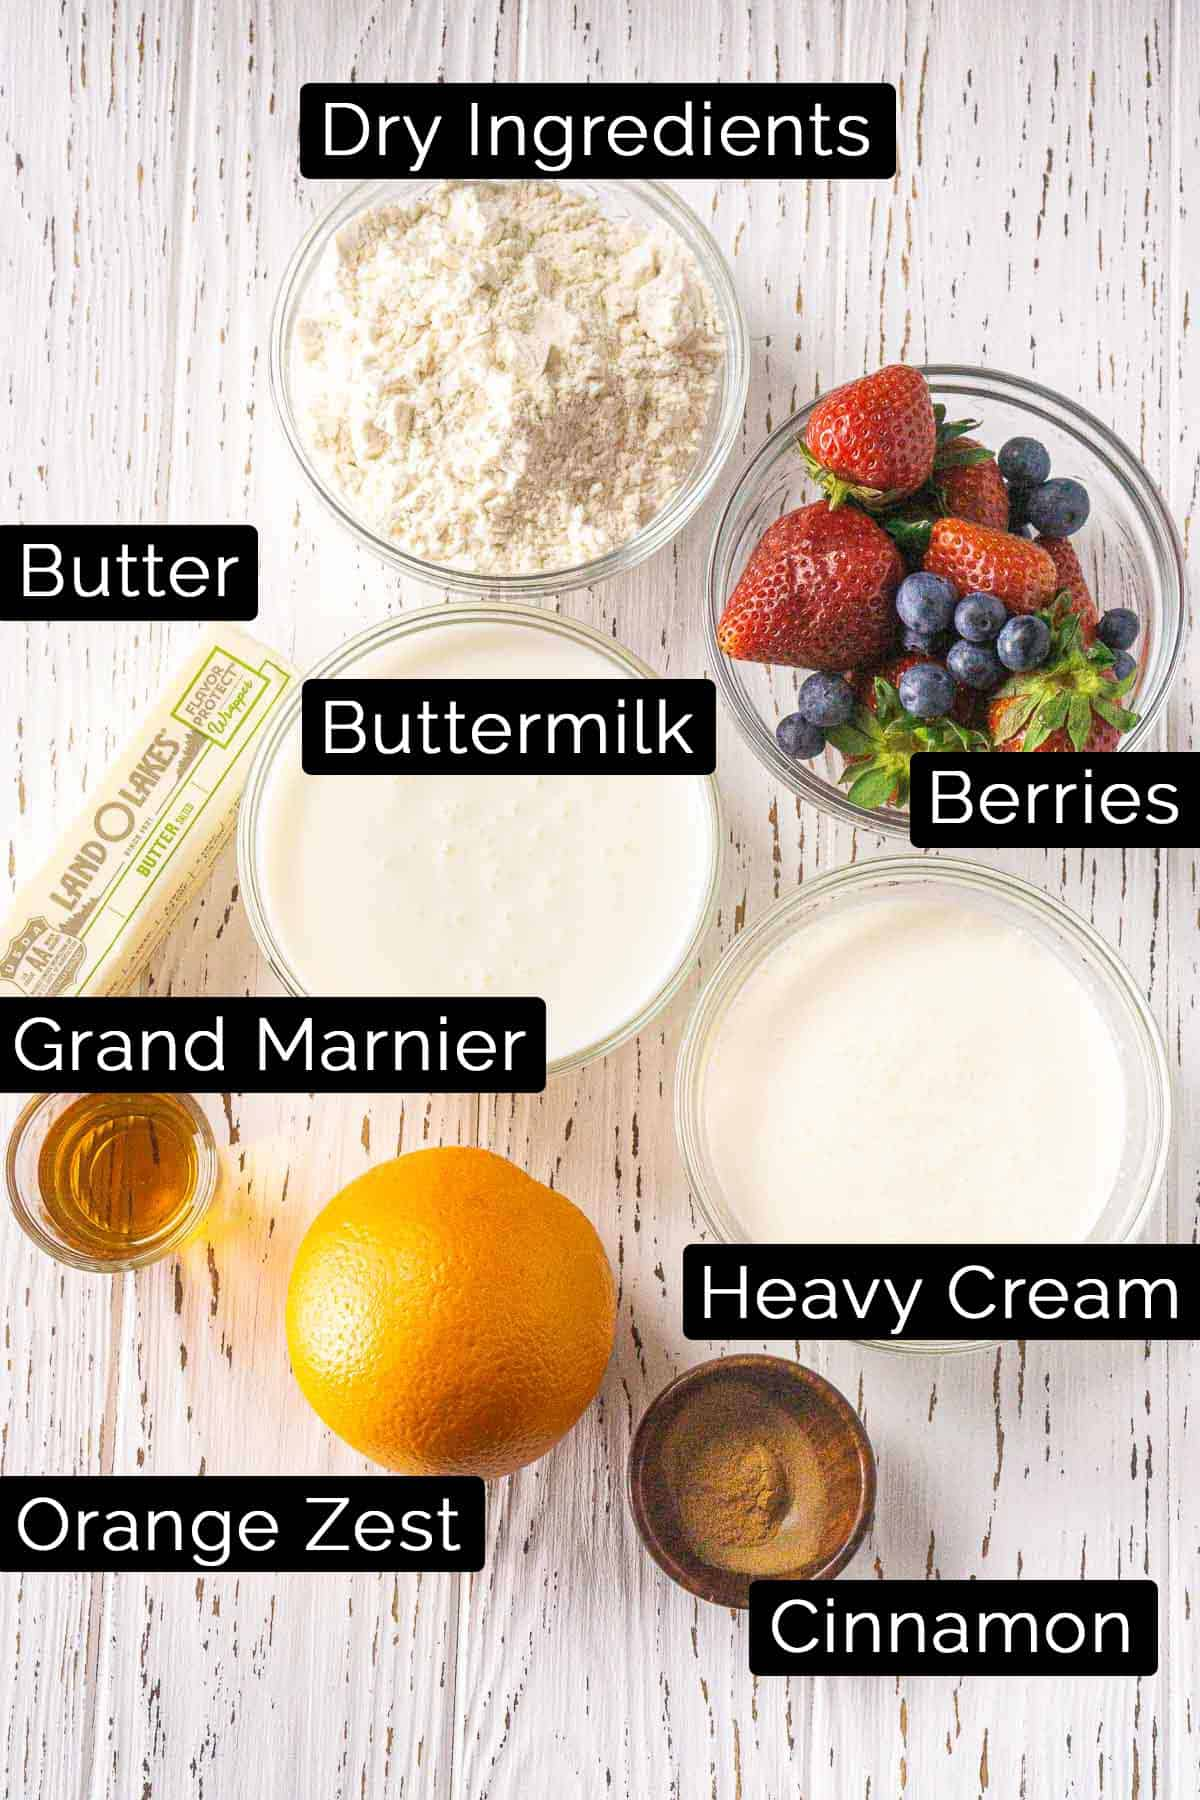 The blueberry strawberry shortcake ingredients on a white wooden board with labels.